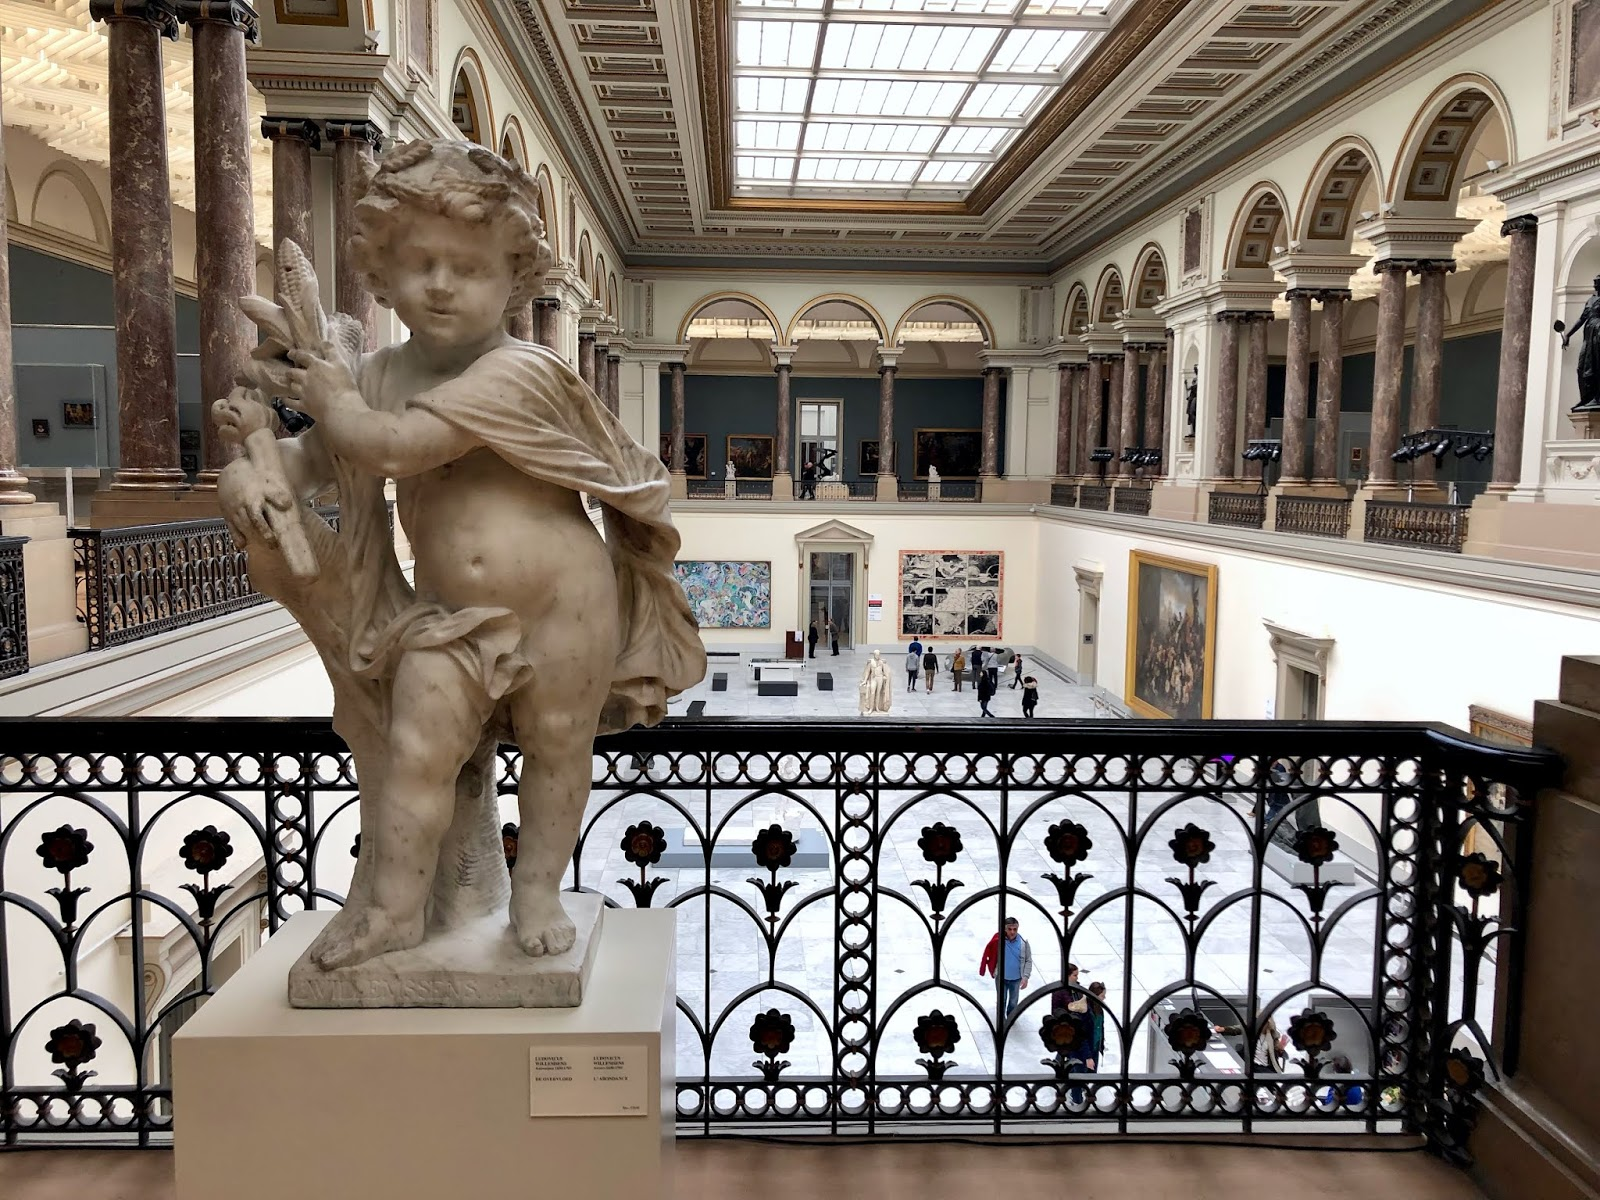 Royal Museums of Fine Arts in Brussels, Belgium